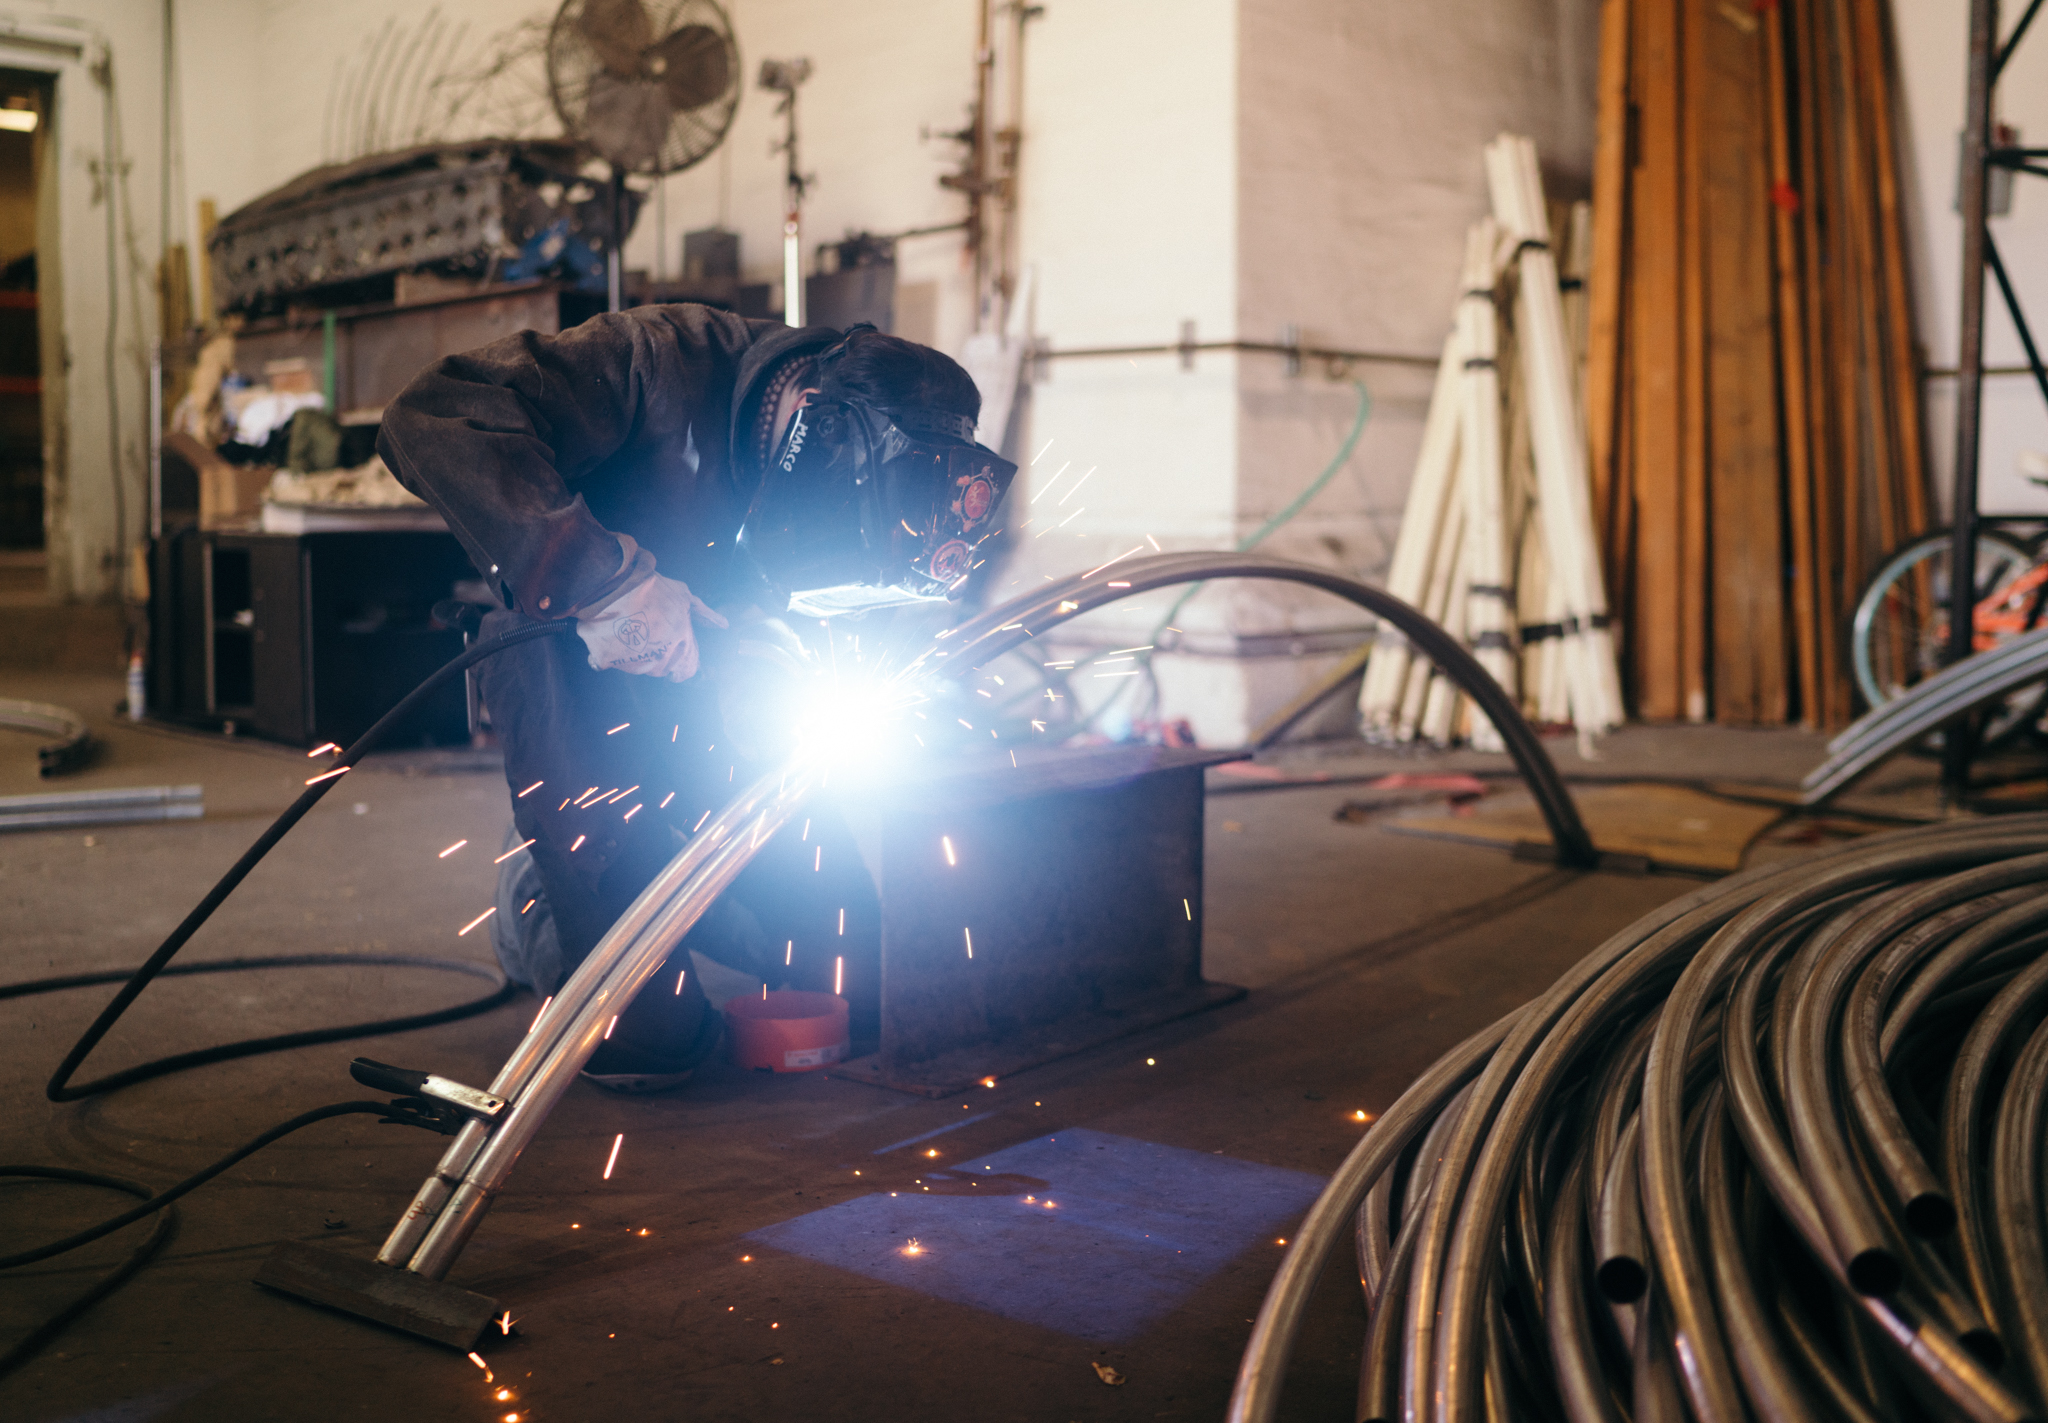 Welding officially begins for the Sonic Runway project. Photo by Afonso Salcedo.